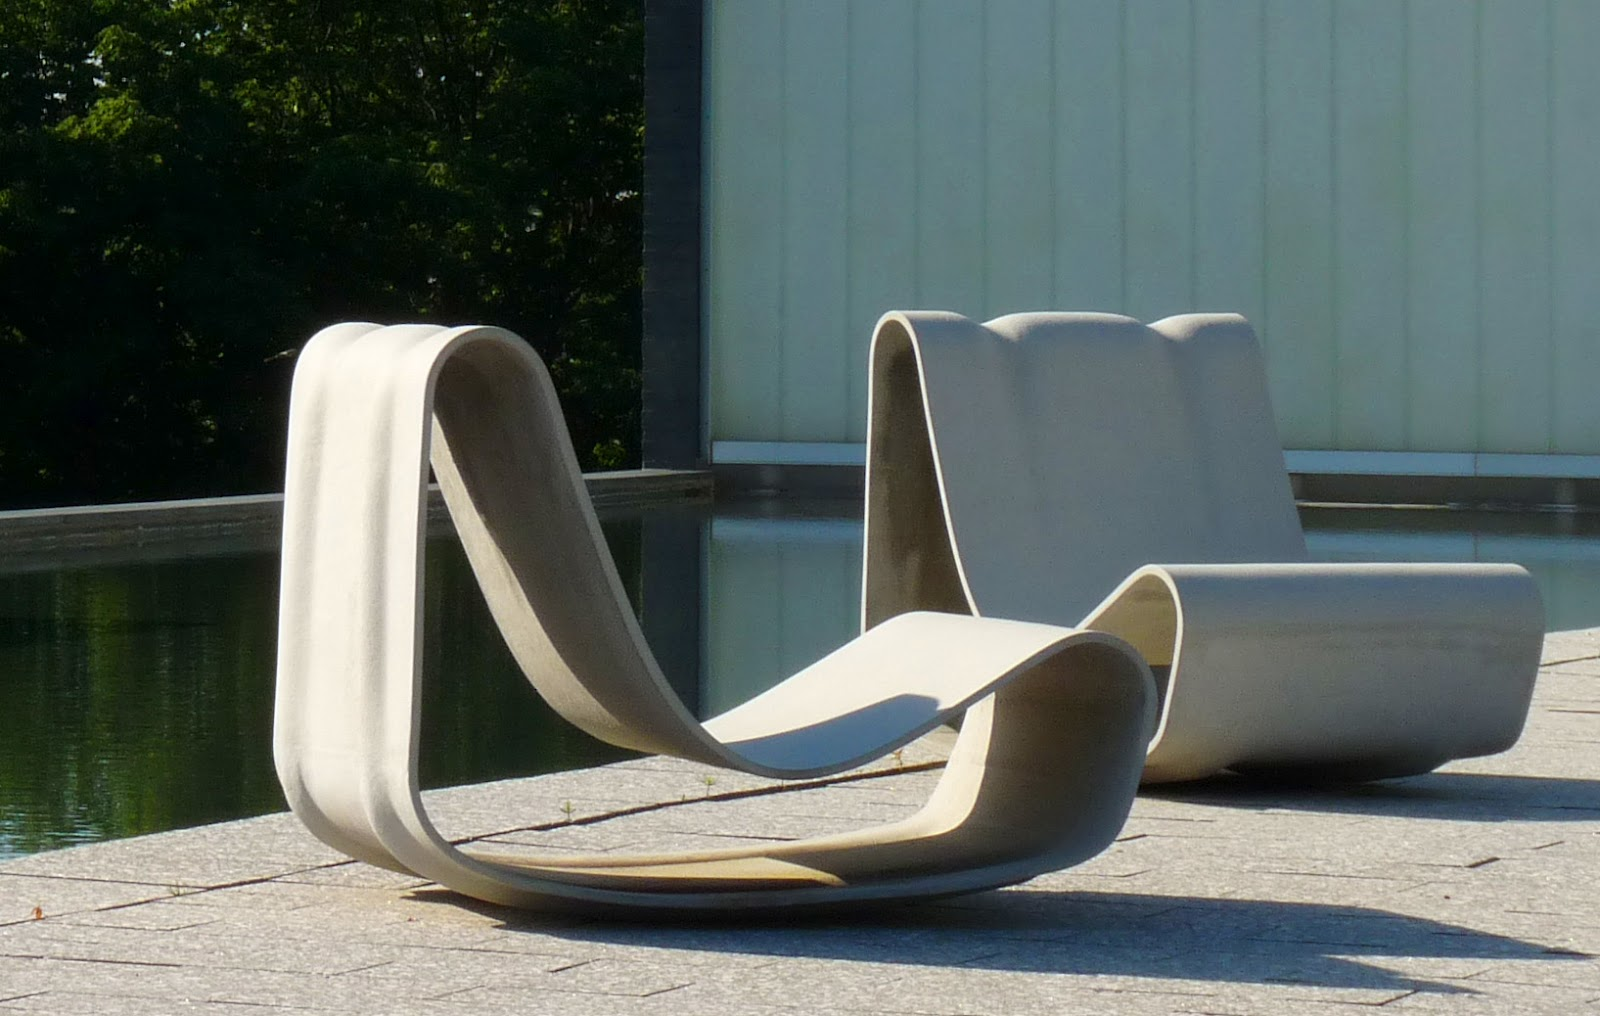 Concrete Loop Modern Hi Quality Outdoor Furniture Designs Chair Upscale Neutra House Grey